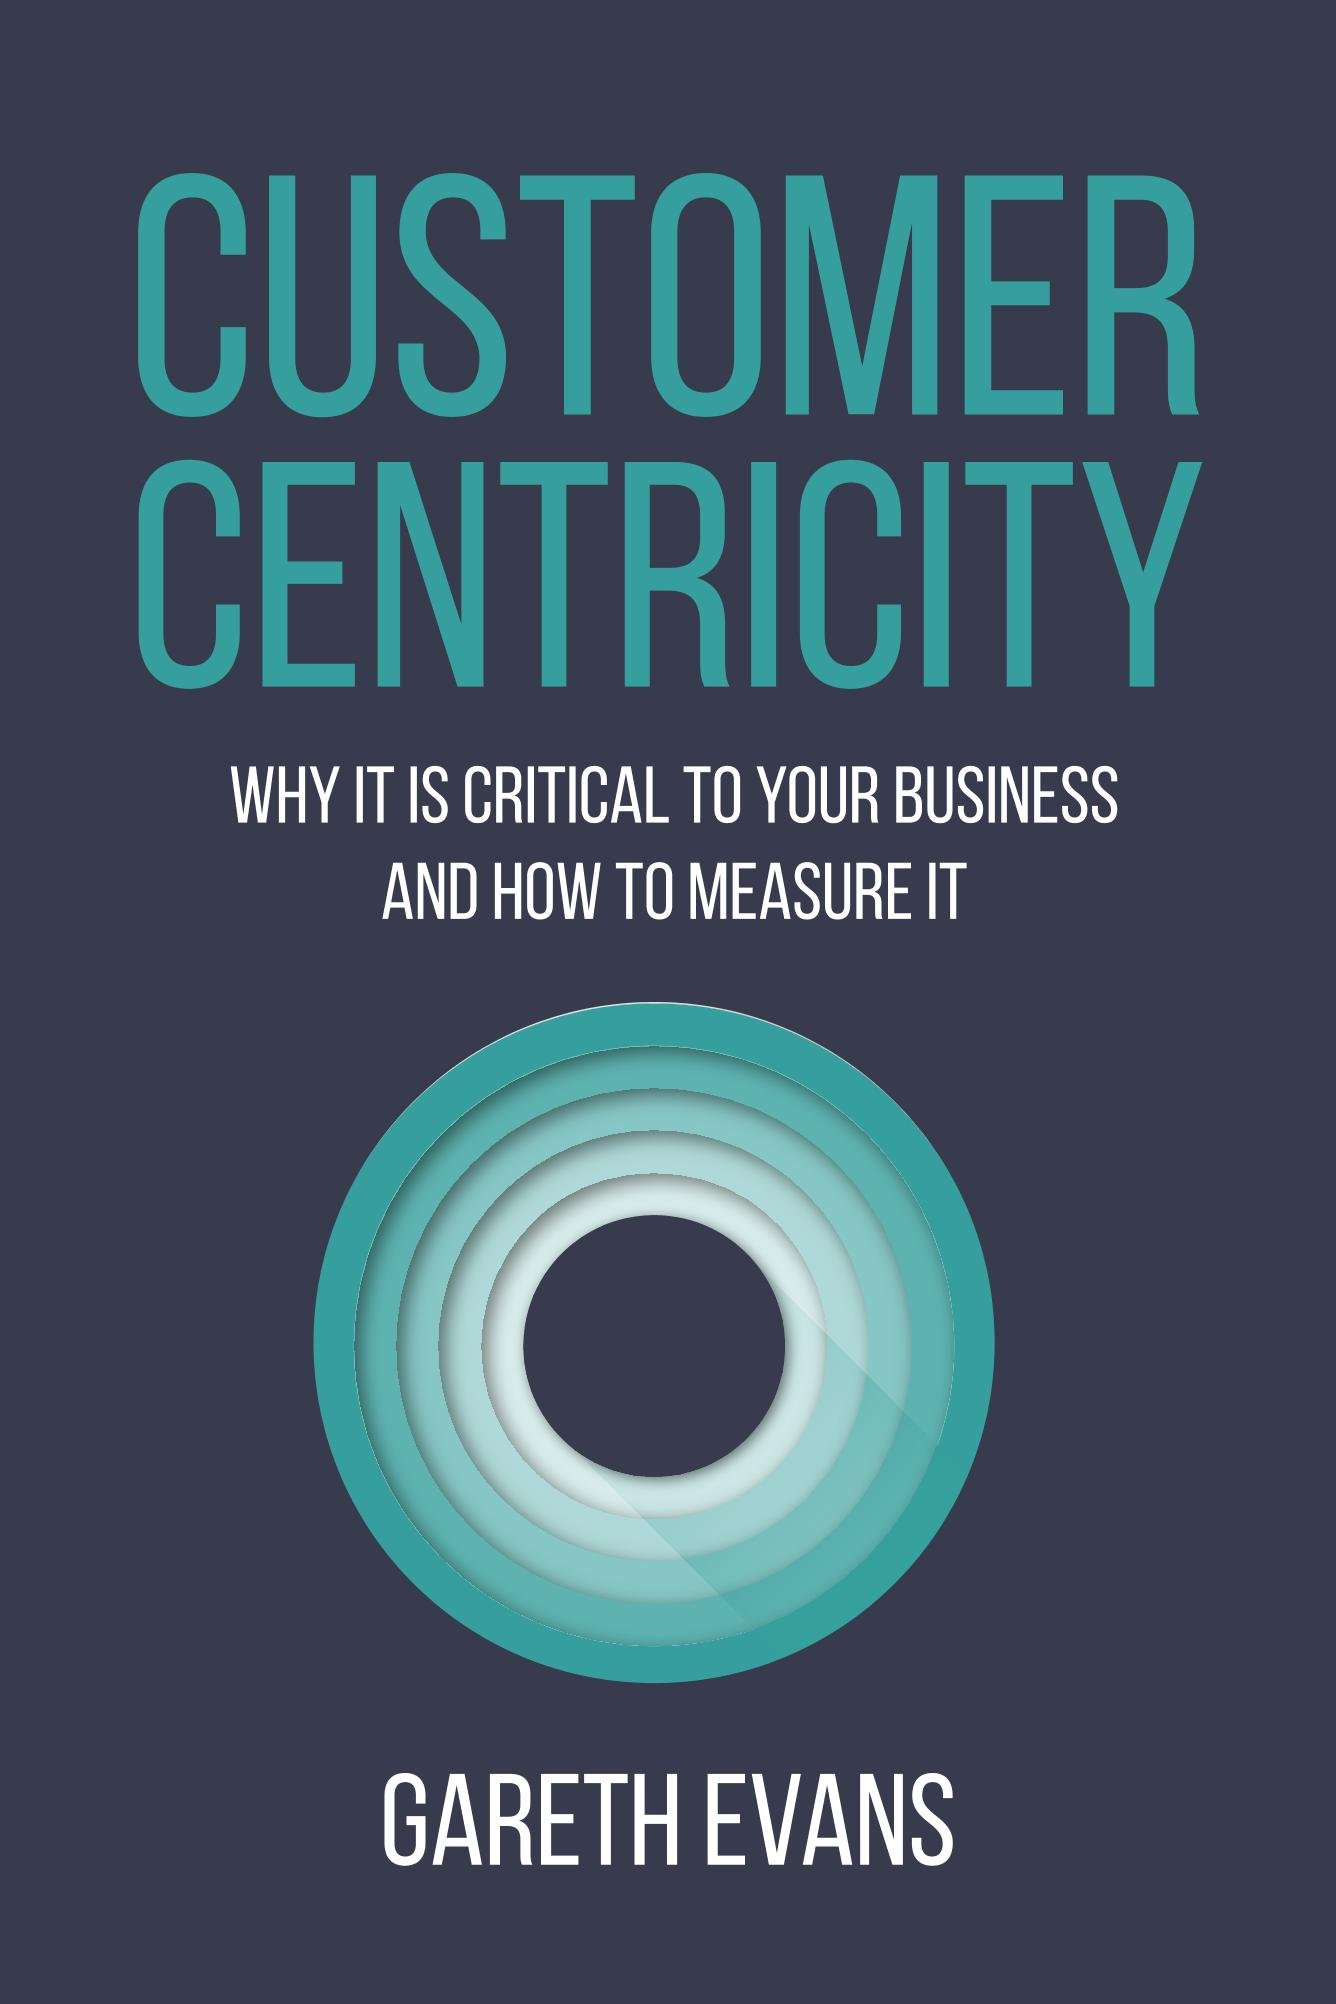 Customer Centricity: Why It Is Critical to Your Business and How to Measure It